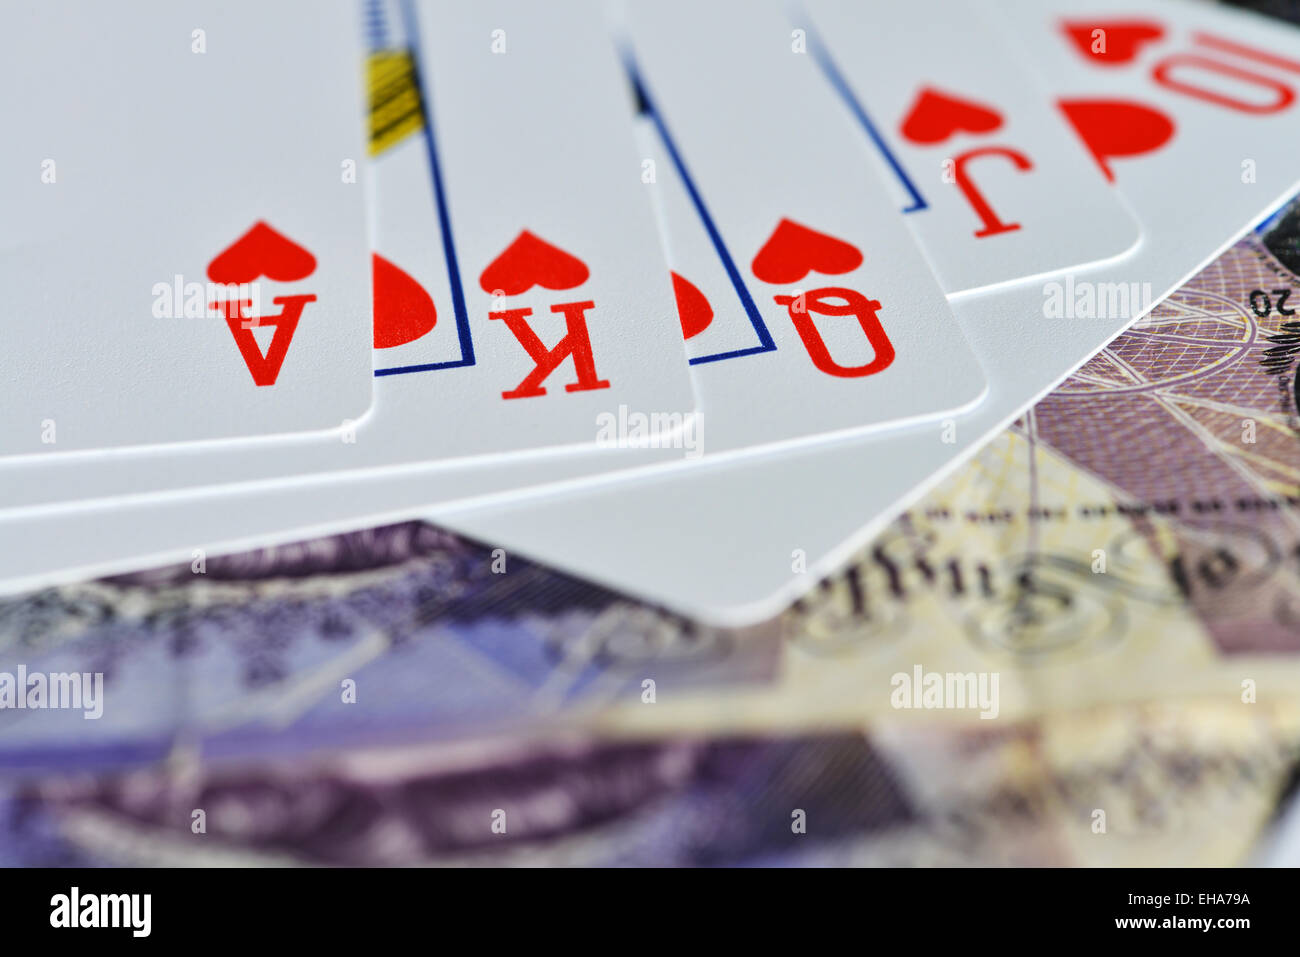 Gambling with money playing cards - Stock Image